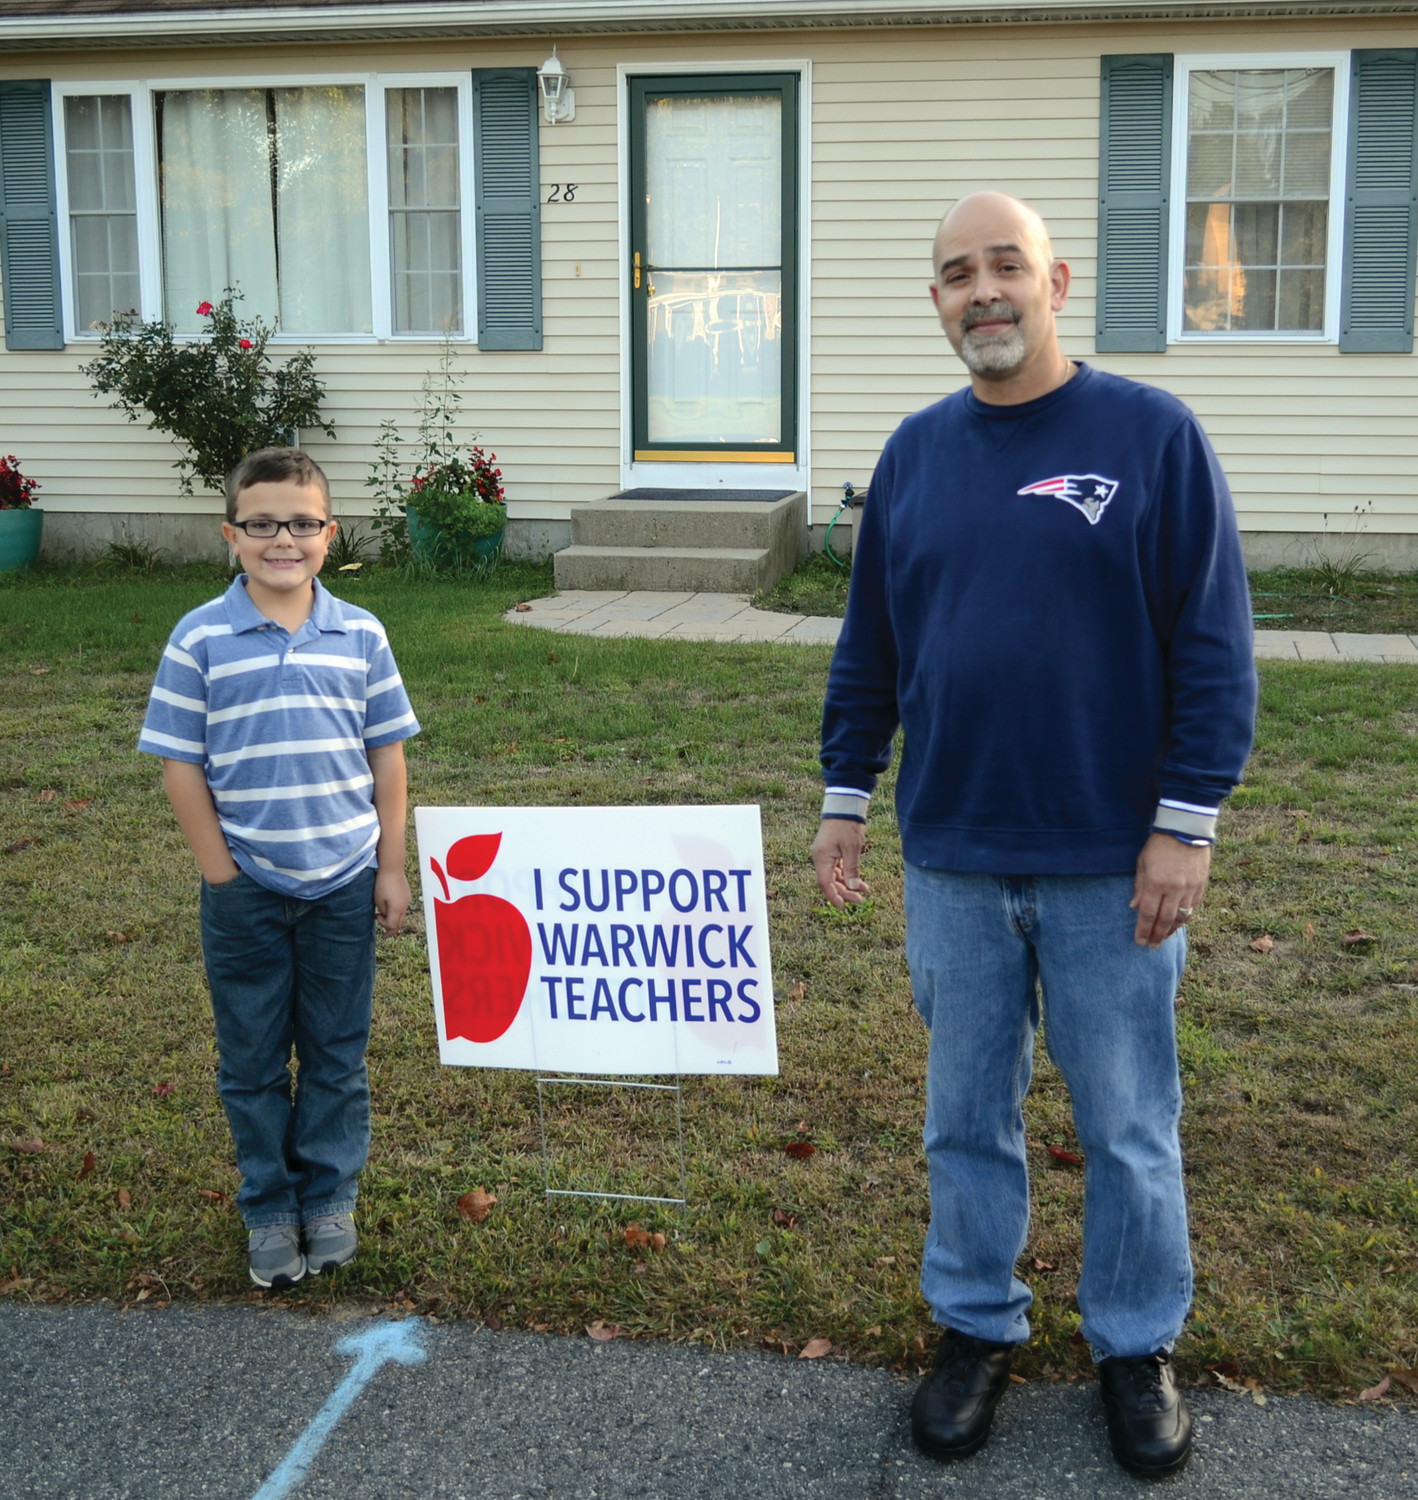 SIGN OF SUPPORT: Michael Pella-Sabourin and his son, Matthew, stand on either side of one of the lawn signs that he ordered to hand out to his neighbors as a show of support for Warwick's teachers. The movement has grown steadily since its humble beginnings.